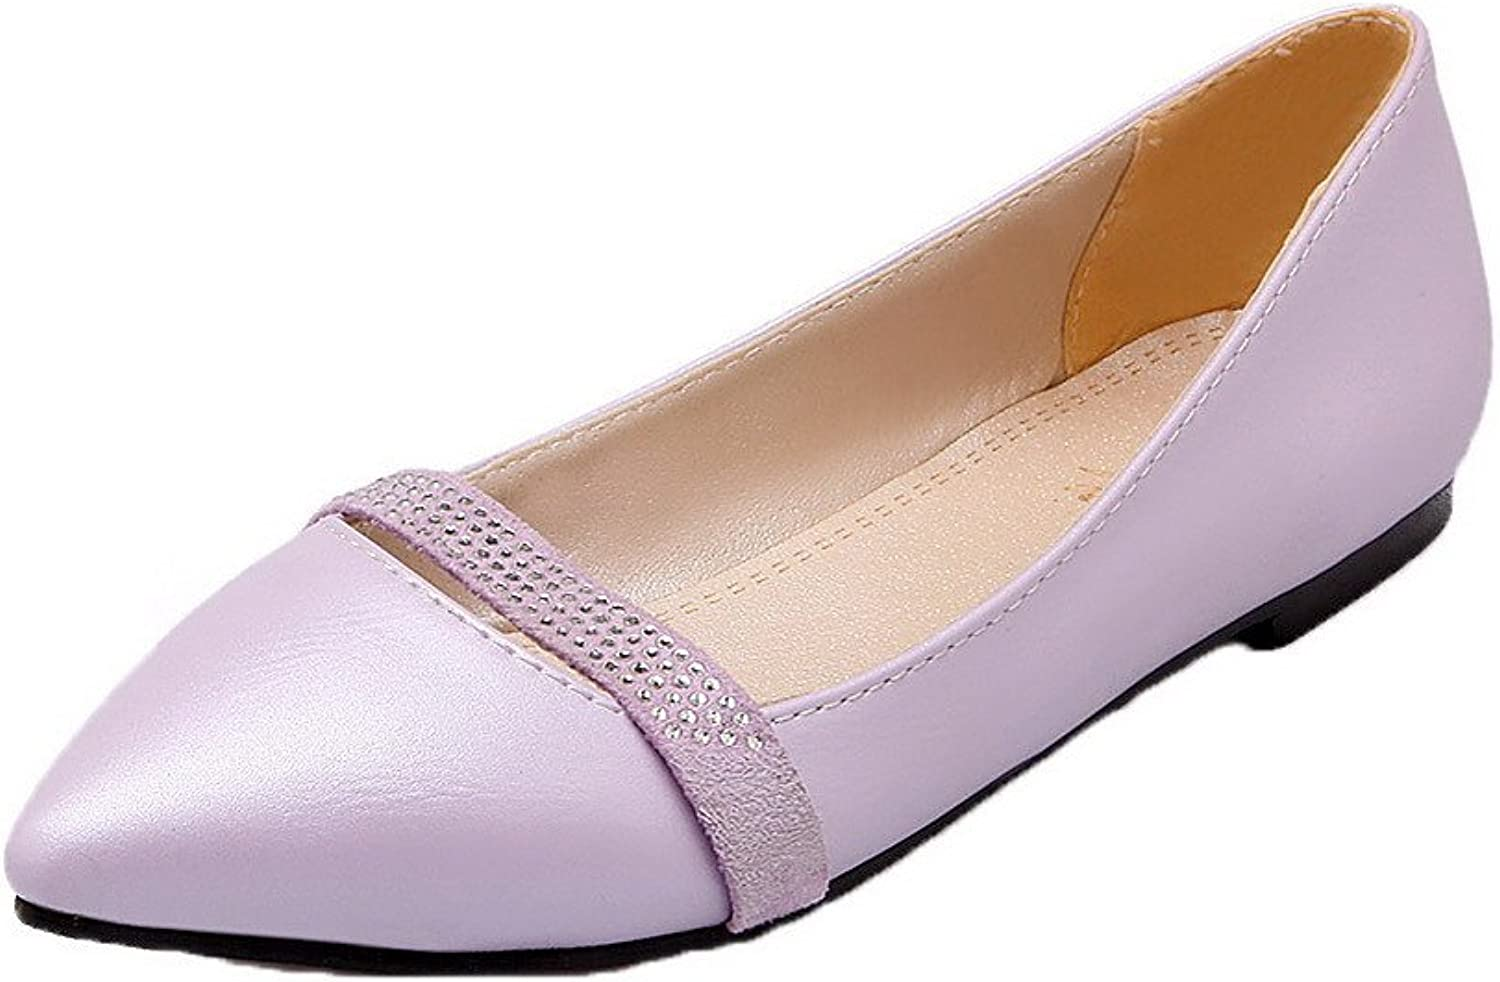 AllhqFashion Women's Low-Heels Pull-On PU Solid Closed-Toe Court shoes